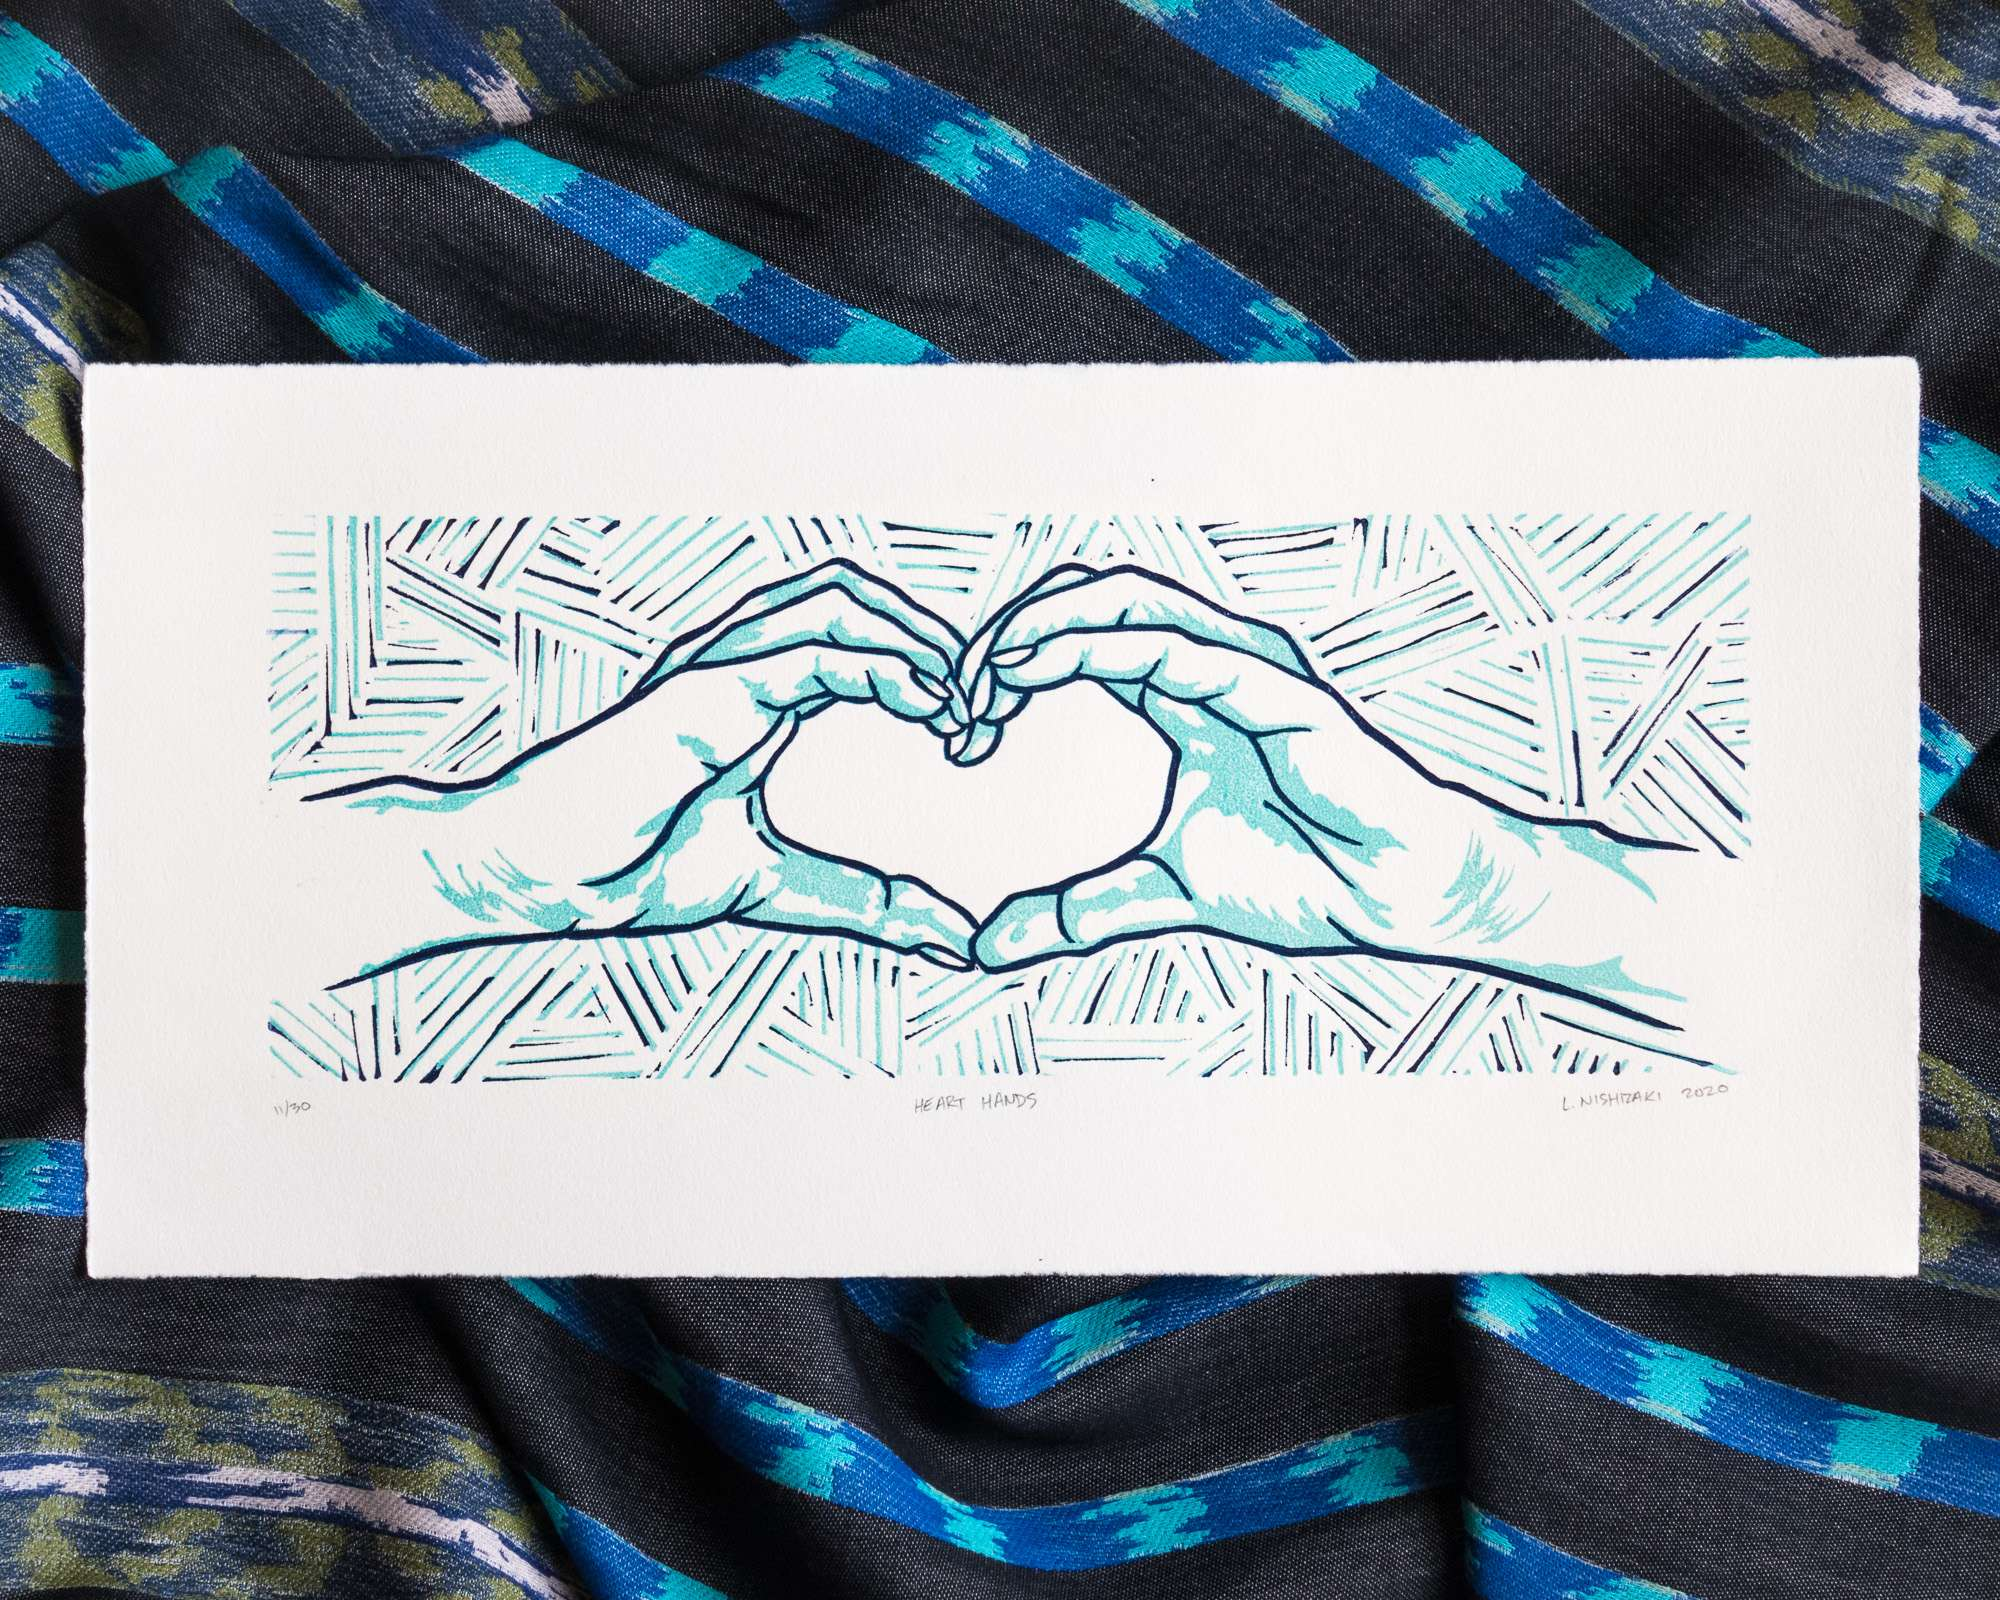 A horizontal print with dark navy and light turquoise ink on off-white paper with torn edges. Two hands form a heart shape; the simple outline is depicted in navy, and shadows are depicted in turquoise. The background is made up of lots of sections of parallel lines, in both navy and turquoise.